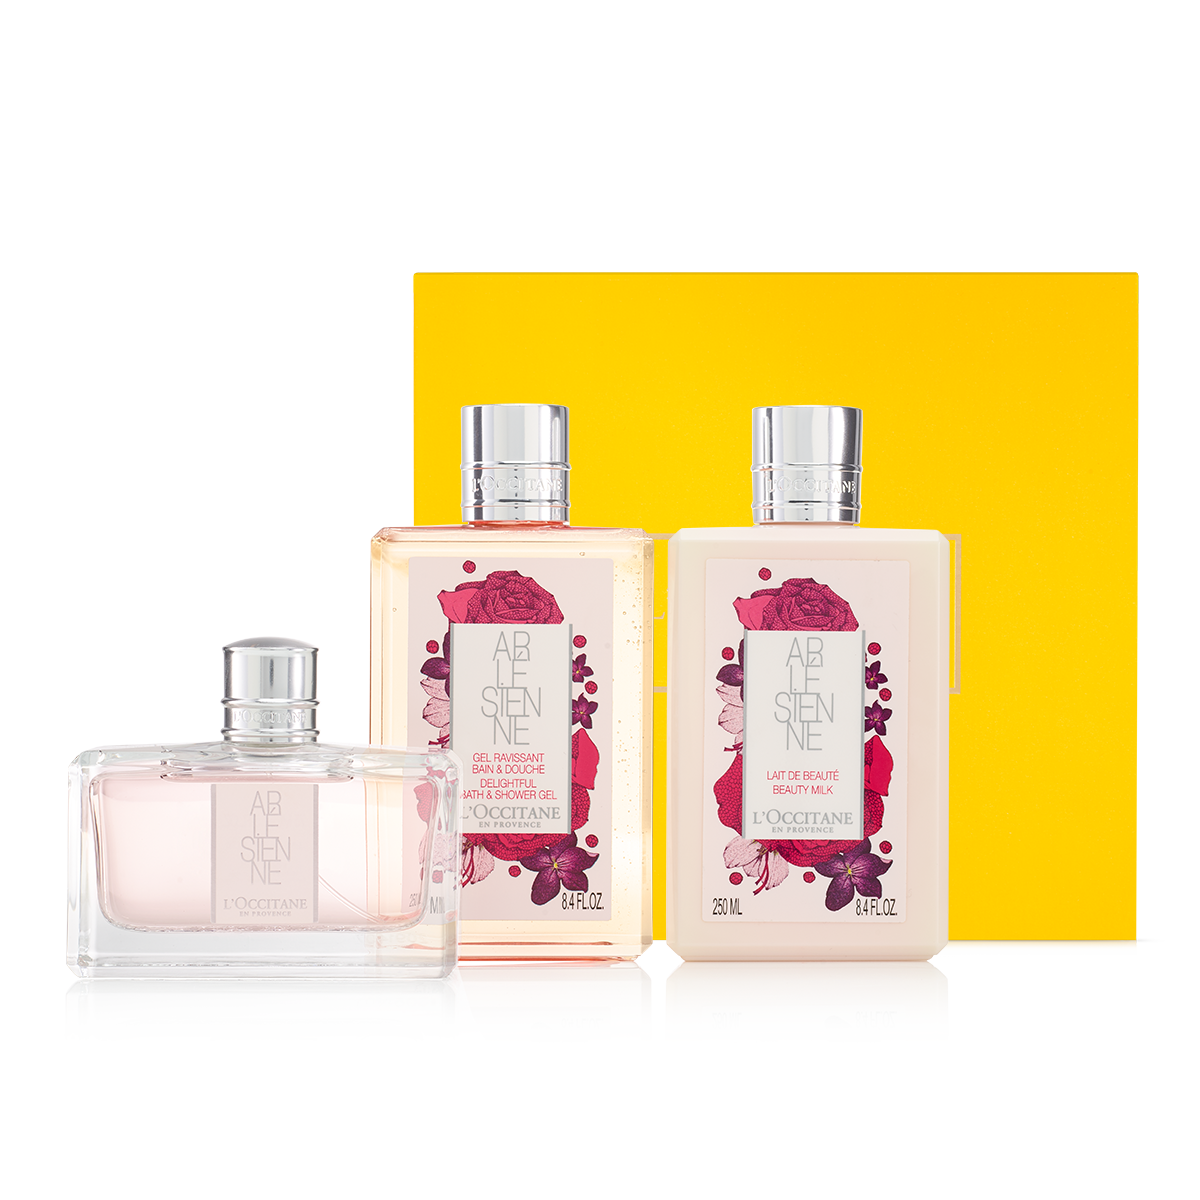 Arlésienne Fragrance Collection - Arlésienne Parfüm Seti